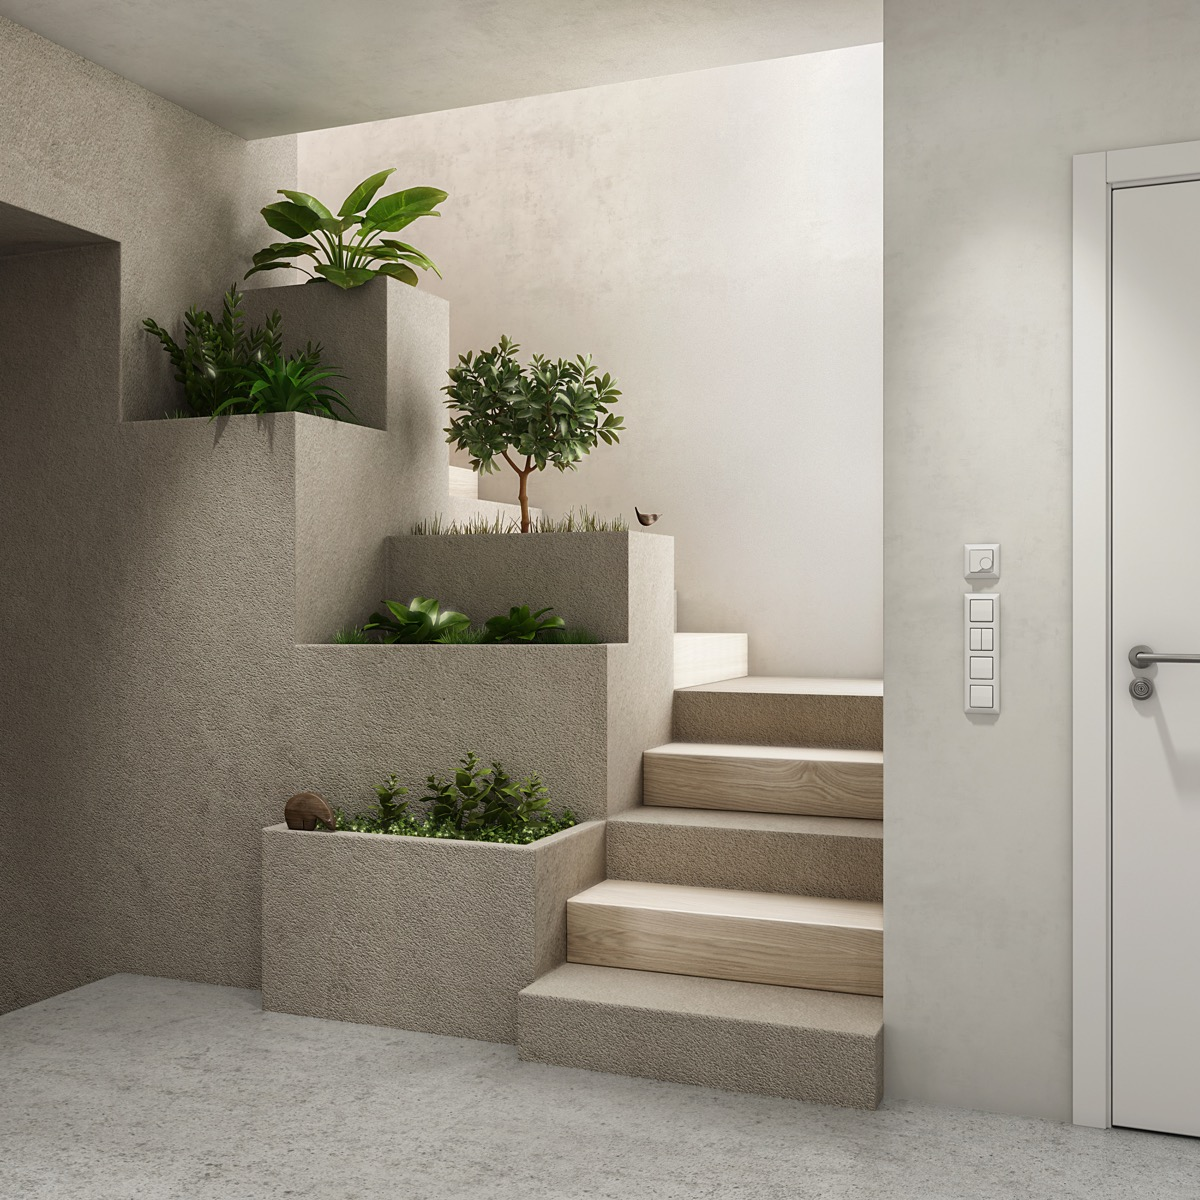 Concrete Stairs Design Ideas Home Stair Picture Exterior: 51 Stunning Staircase Design Ideas